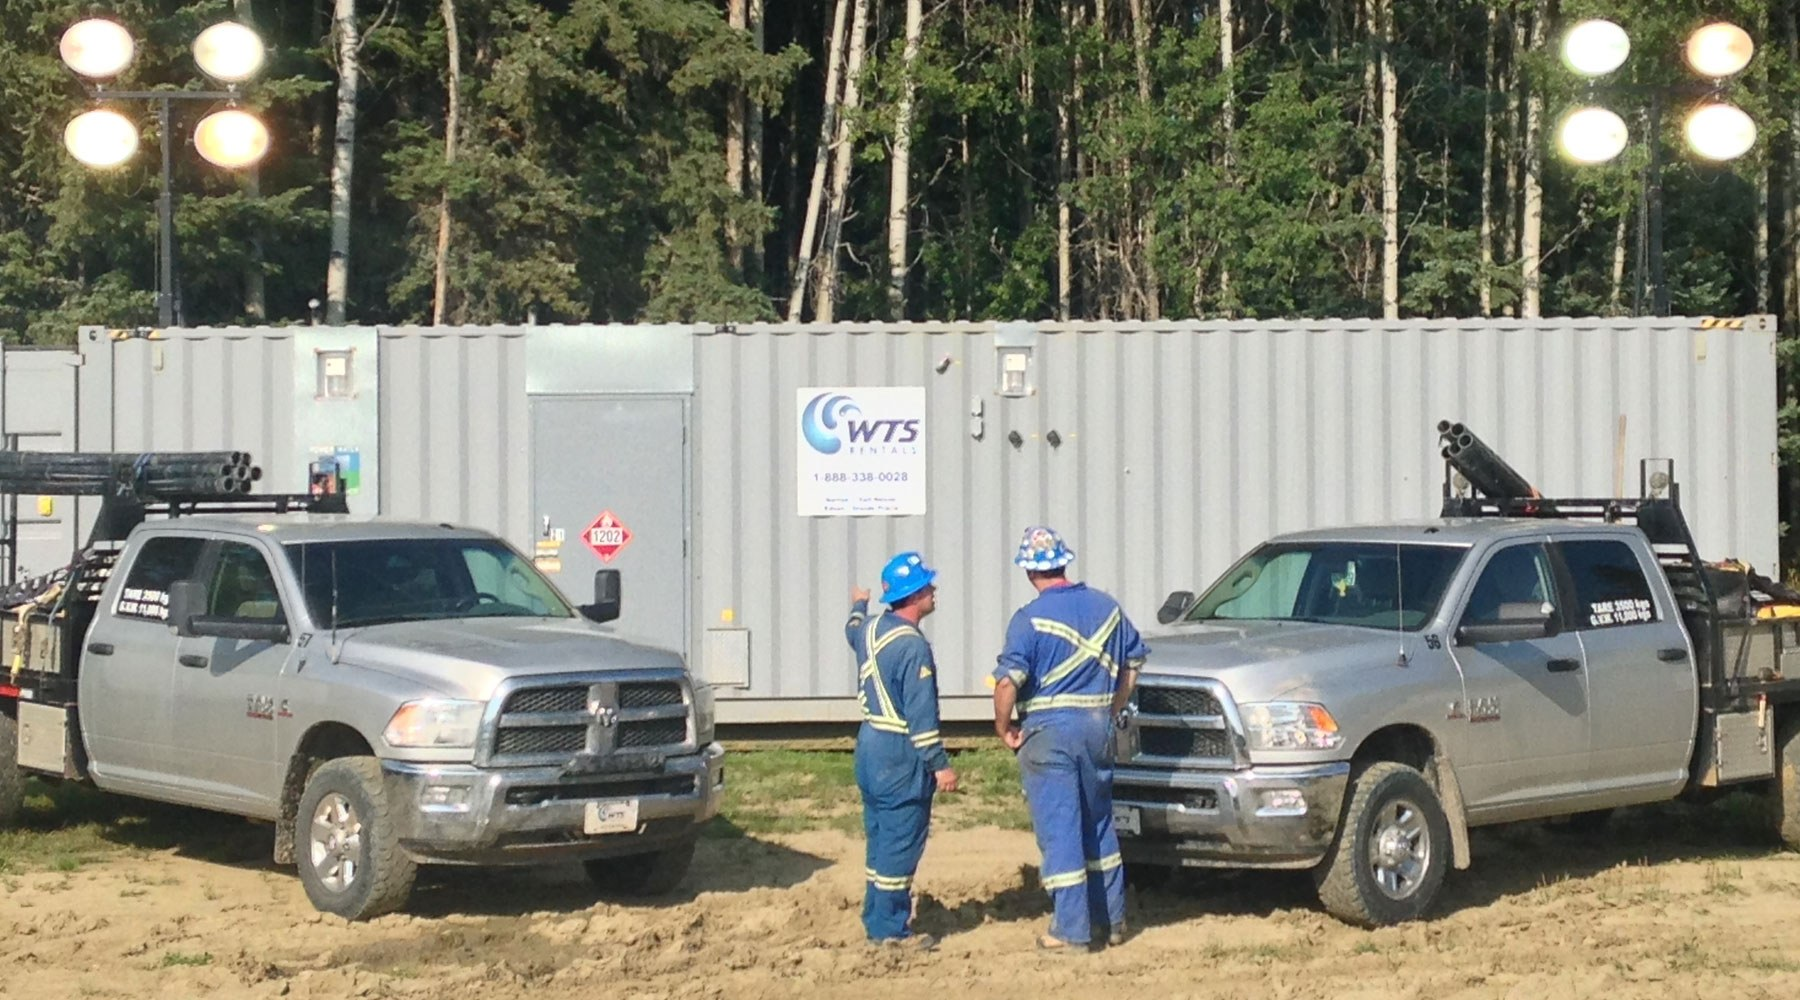 Two workers in blue PPE standing in front of a WTS-branded work trailer